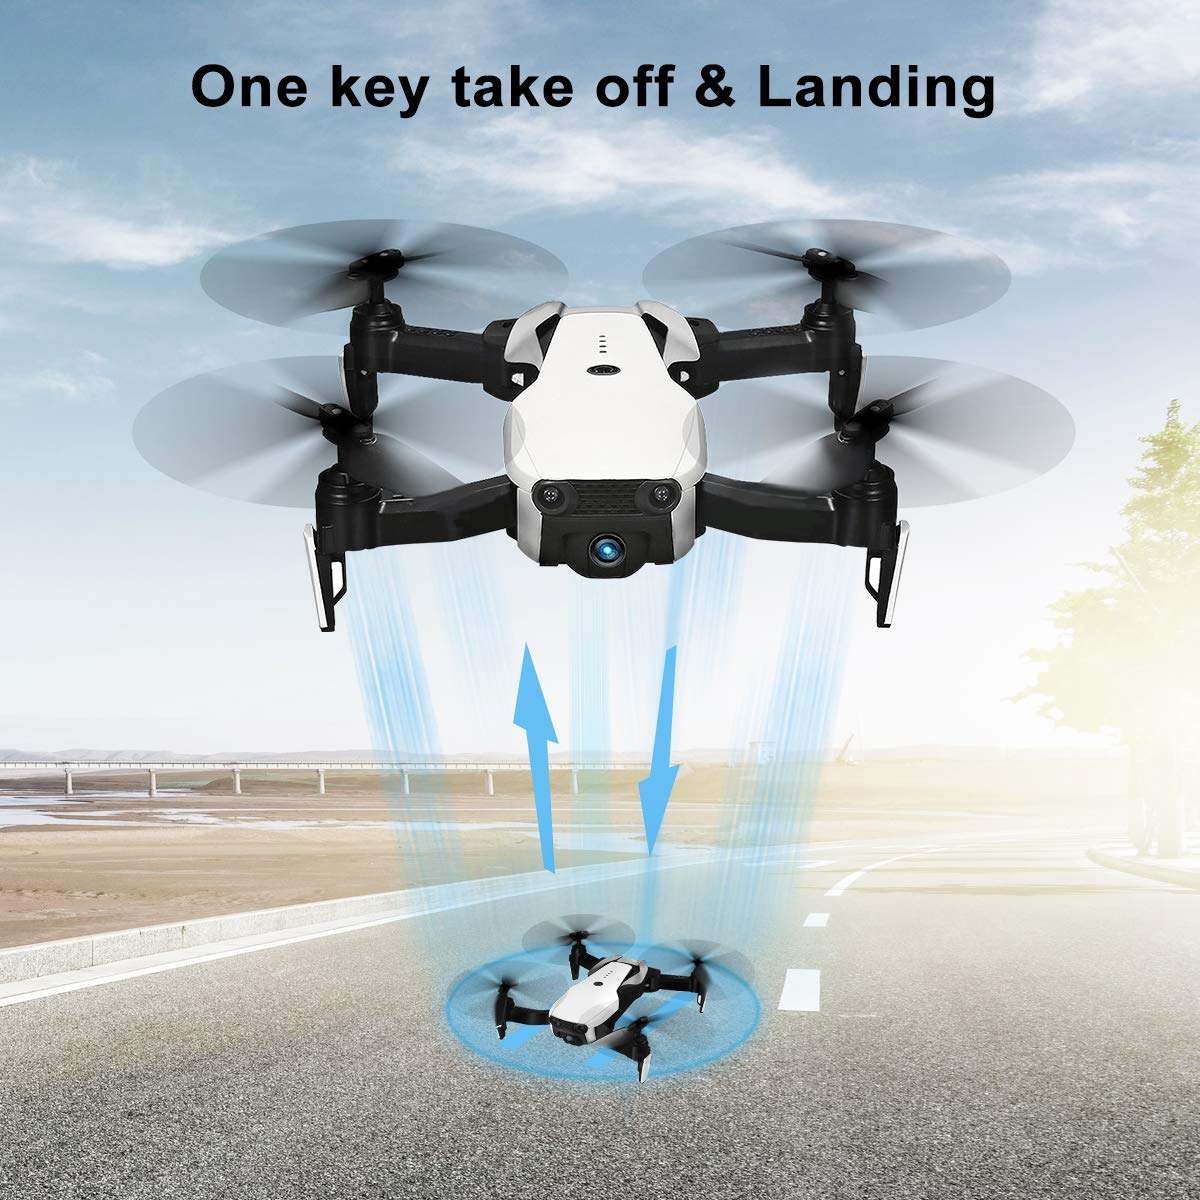 Drones with Camera 1080P for Adults,EACHINE E511 WiFi FPV Live Video Quadcopter with 120° FOV 1080P HD Camera, 17mins Long Flight Time Foldable RC Drone RTF - Altitude Hold, 3D Flip, APP Control by EACHINE (Image #5)